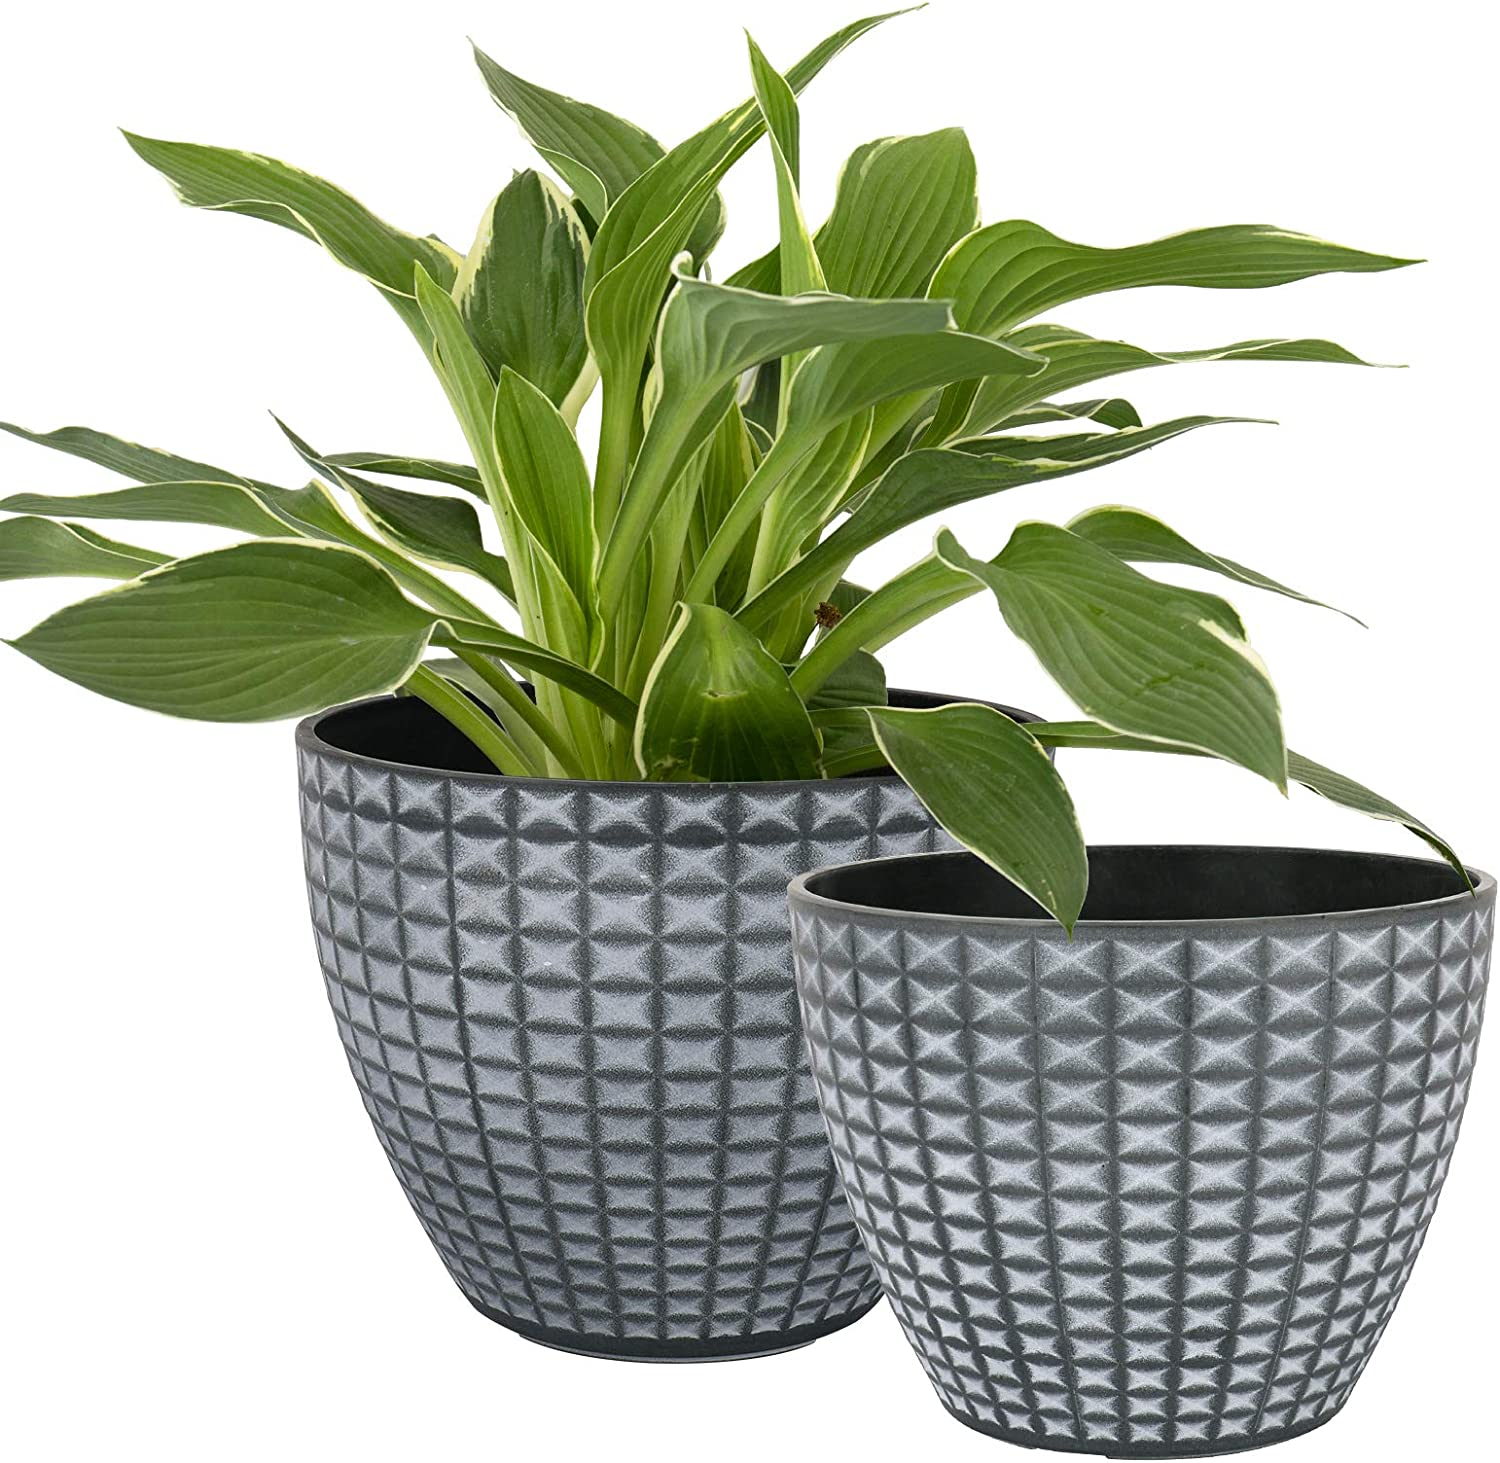 LA JOLIE MUSE Flower Pots Outdoor Indoor, Modern Chic Planters with White Geometric Mosaic Texture Patterns in Gray Gradient Background, Set of 2 (8.6 + 7.5 Inch)